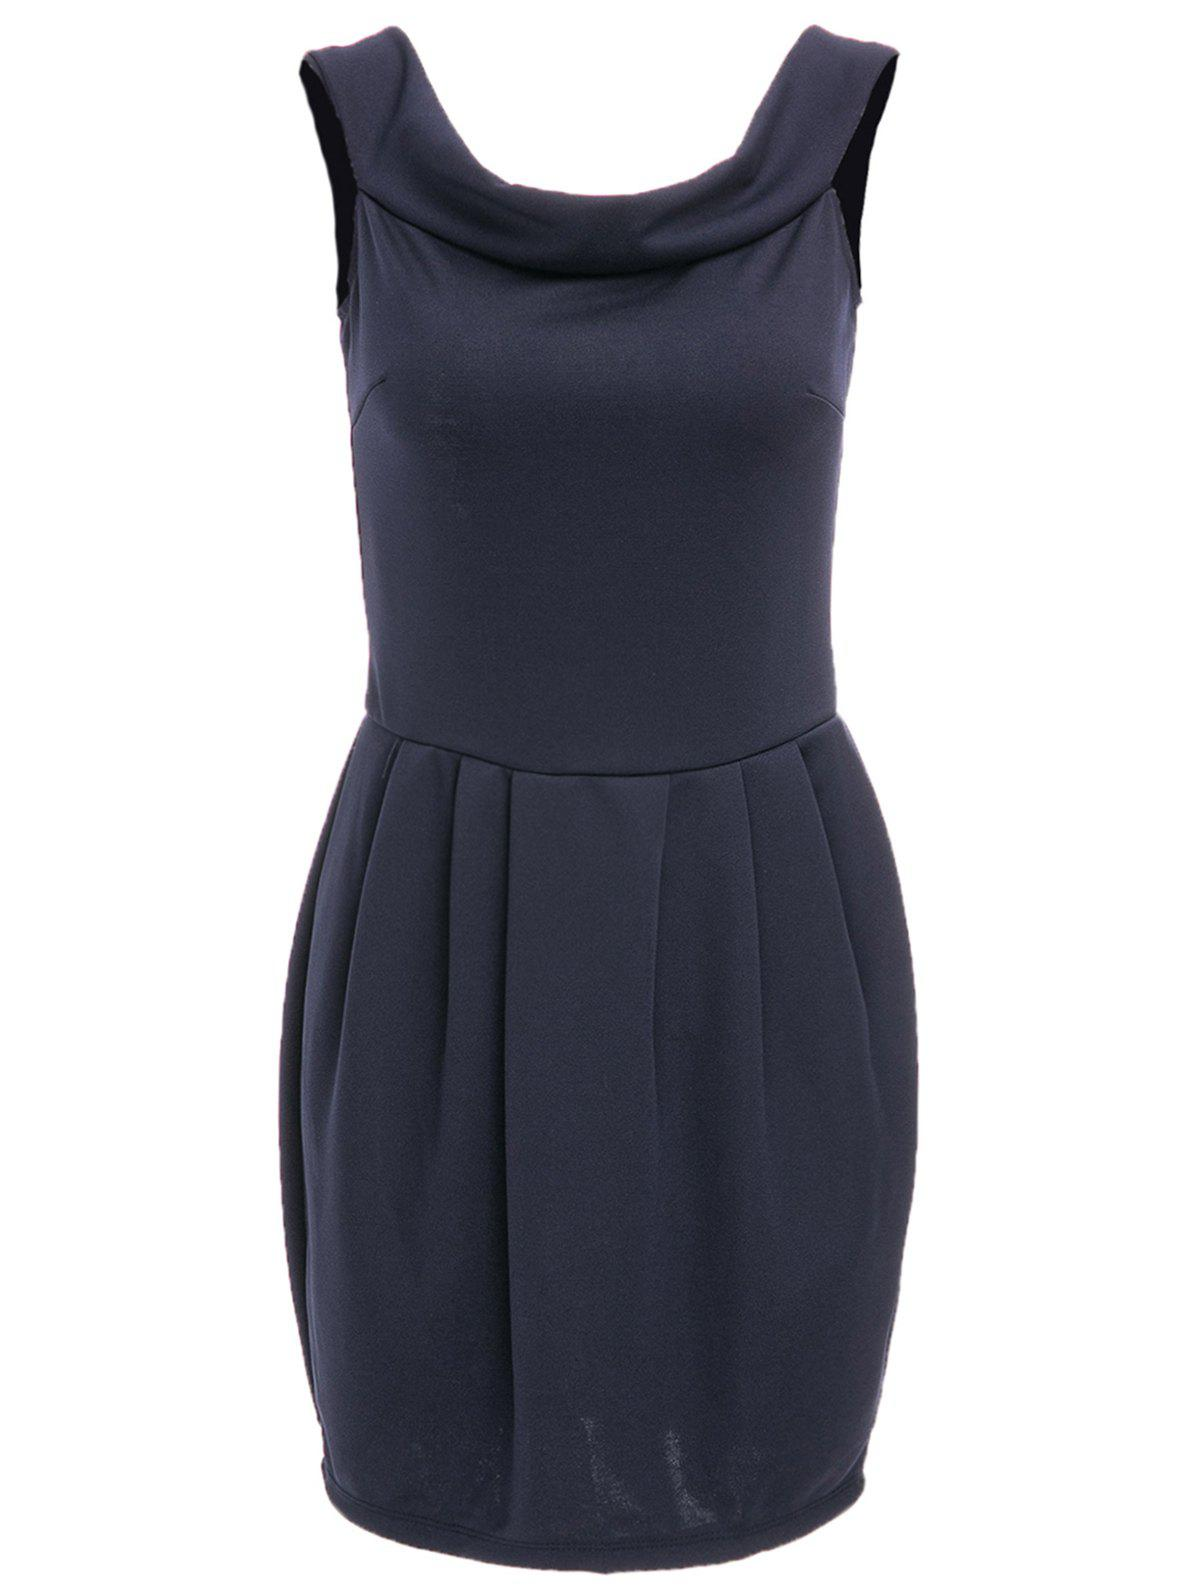 Chic Solid Color Boat Neck Zippered Dress For Women - DEEP BLUE M